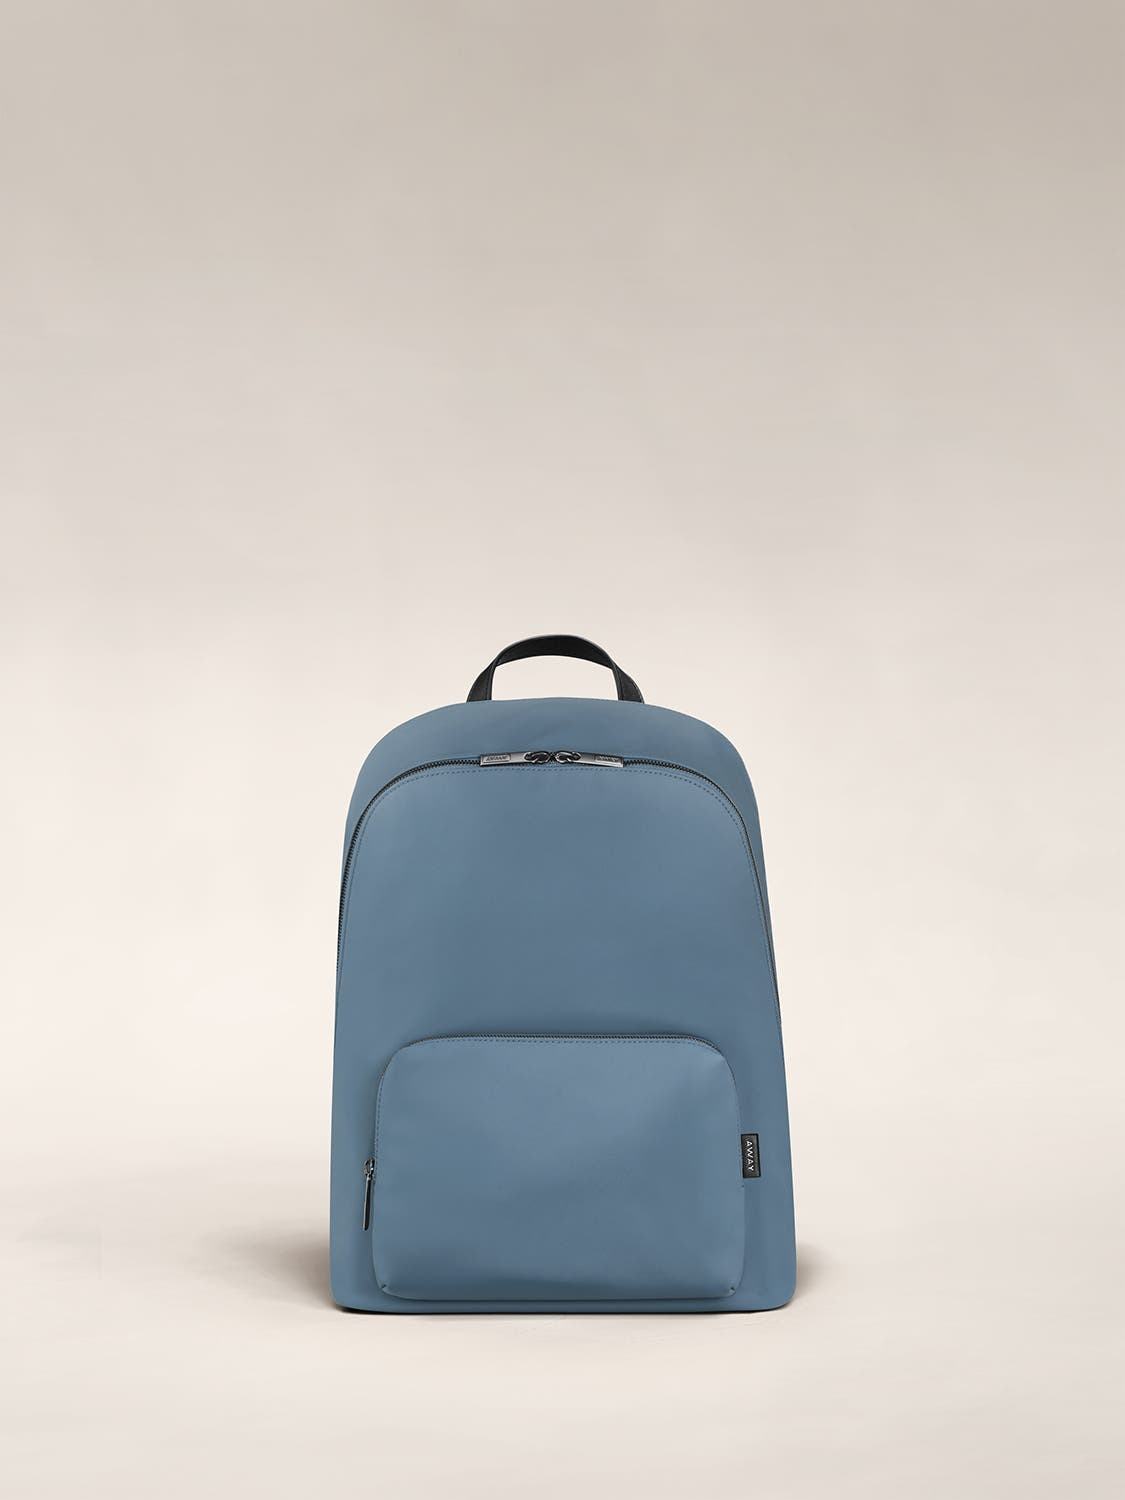 Front of a cost blue backpack with two pockets one main and one small with zip.